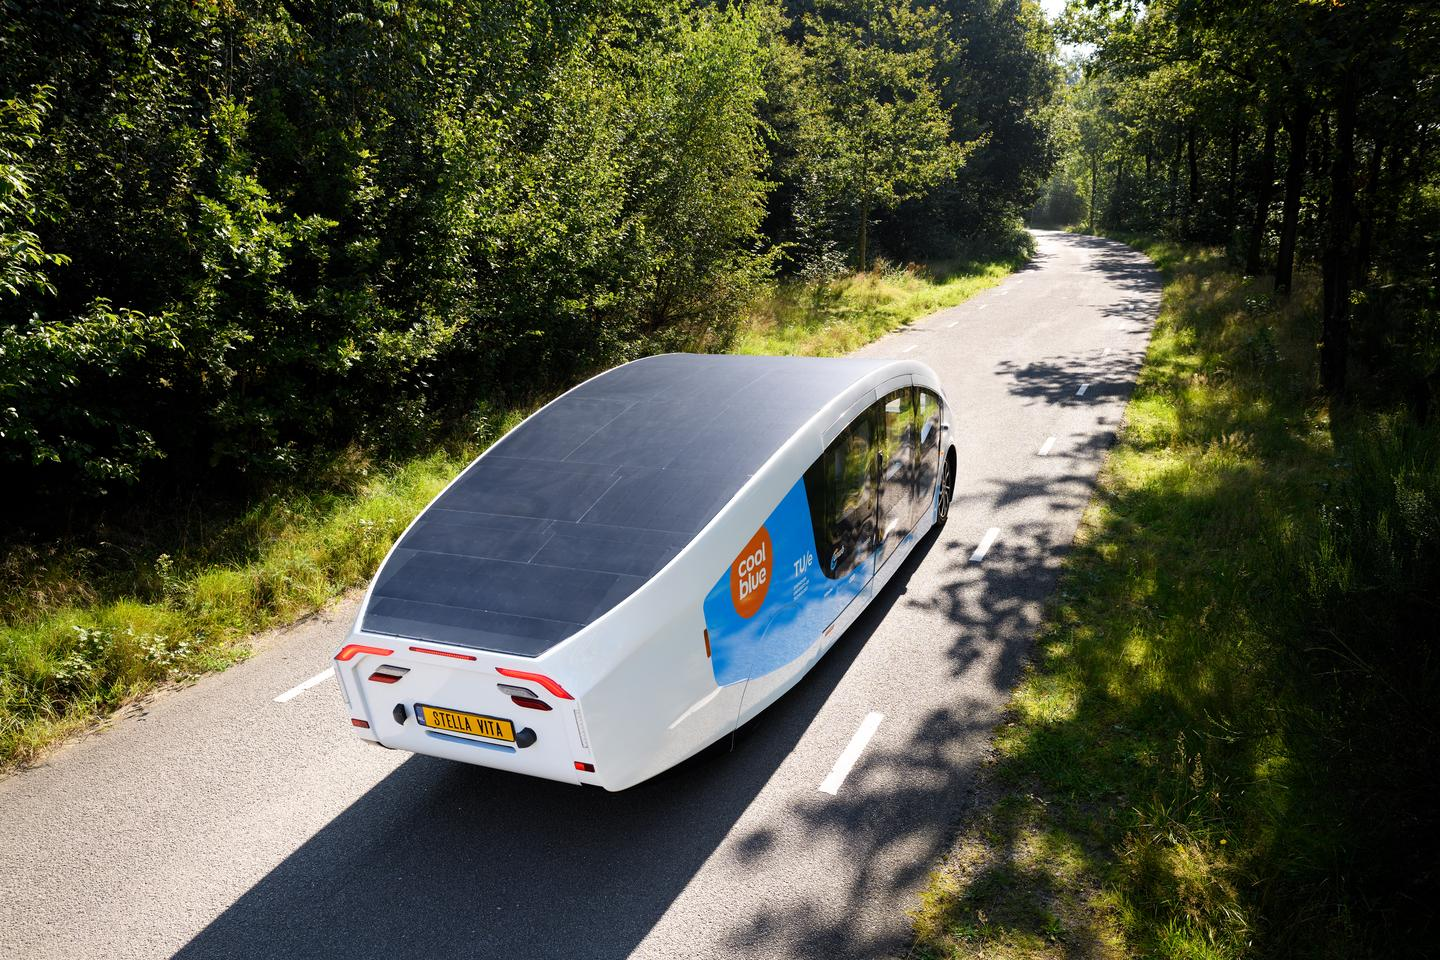 The student team will embark on a 3,000-km road trip from Eindhoven to southern Spain on September 19